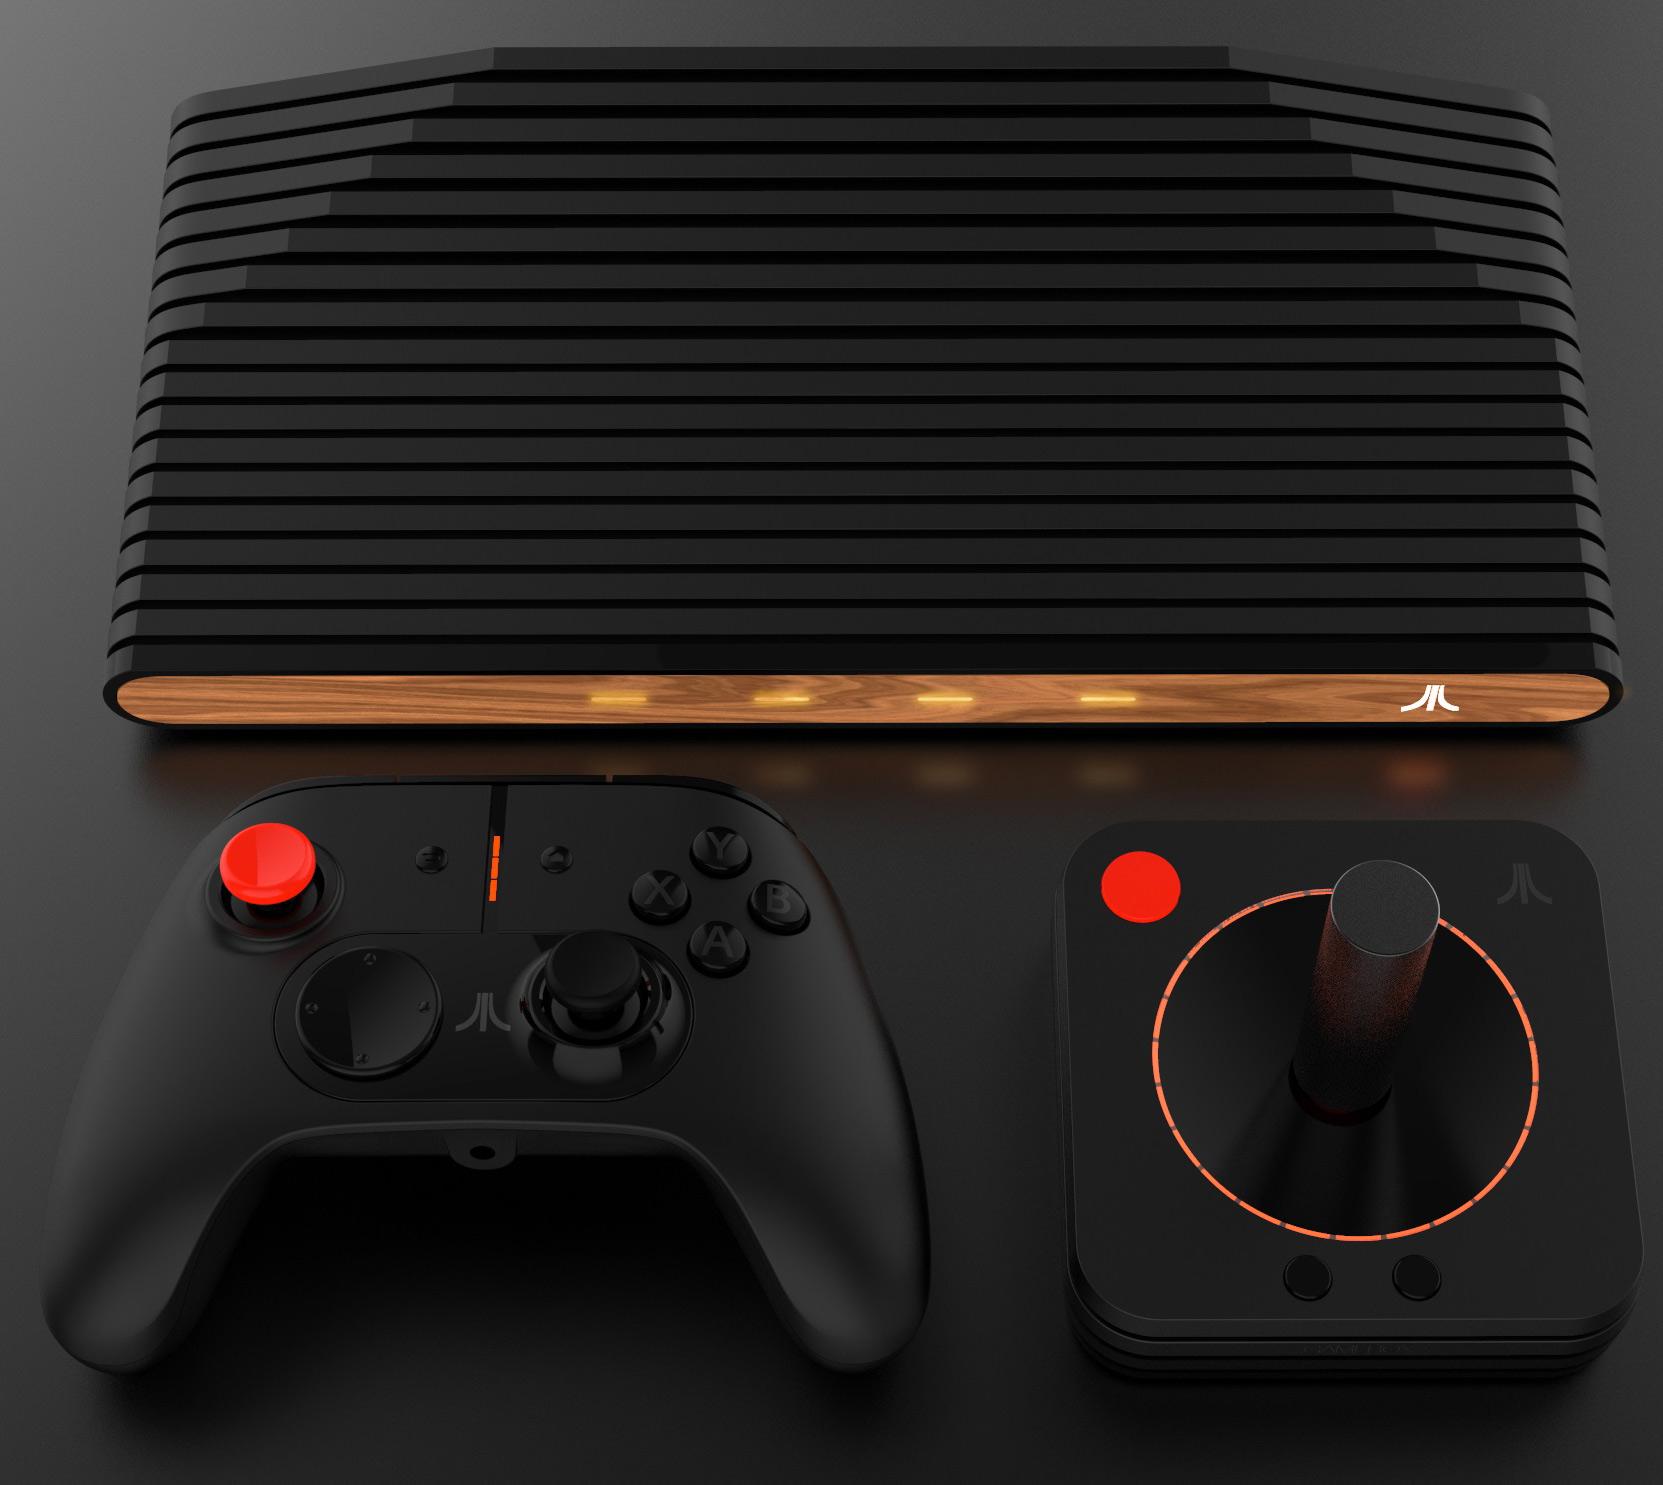 Atari VCS Officially Unveiled, is a Linux-Powered Gaming Computer